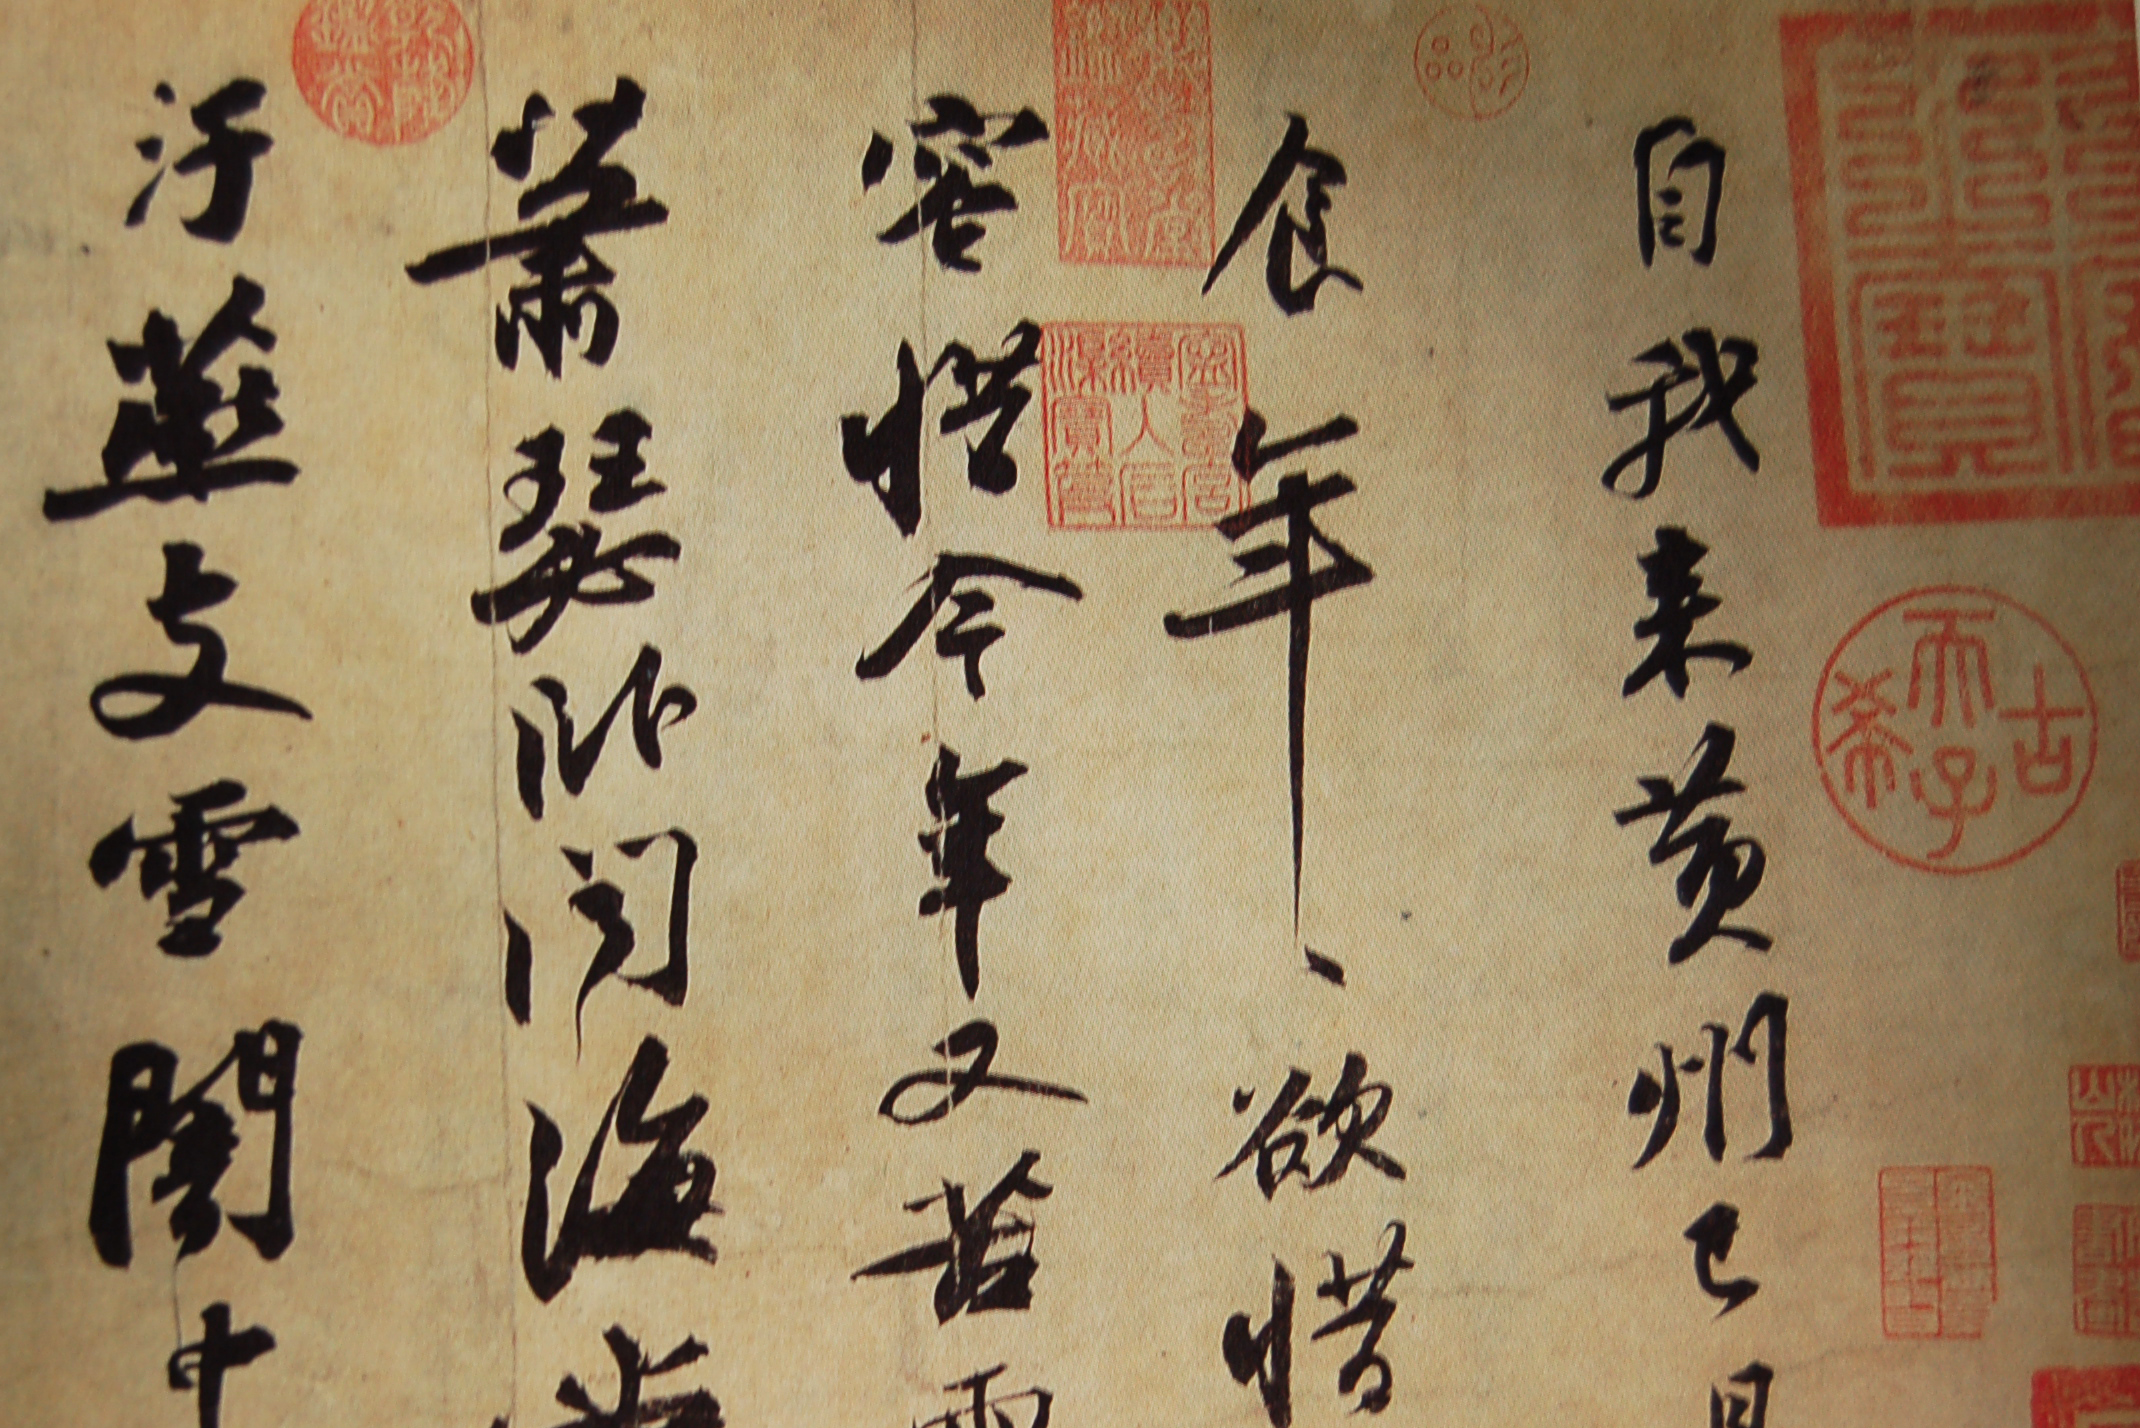 Chinese Calligraphy Center For Global Education Asia: ancient china calligraphy